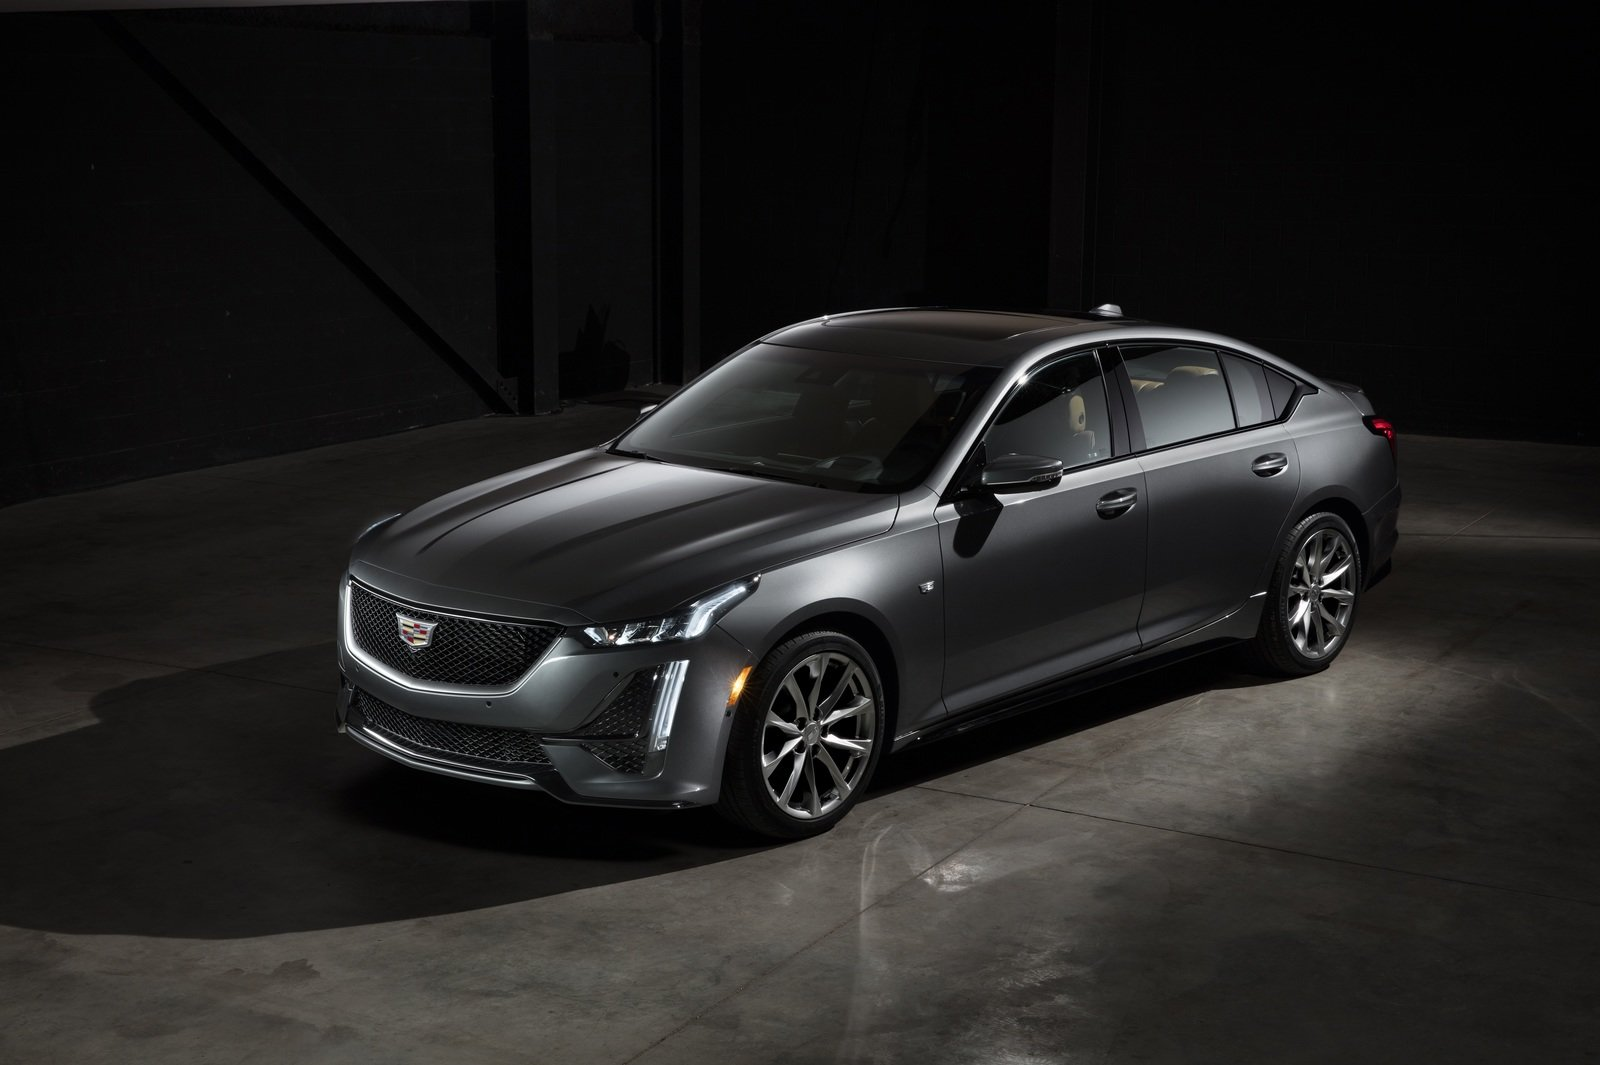 2020 Cadillac CT5 - Quirks And Features | Top Speed